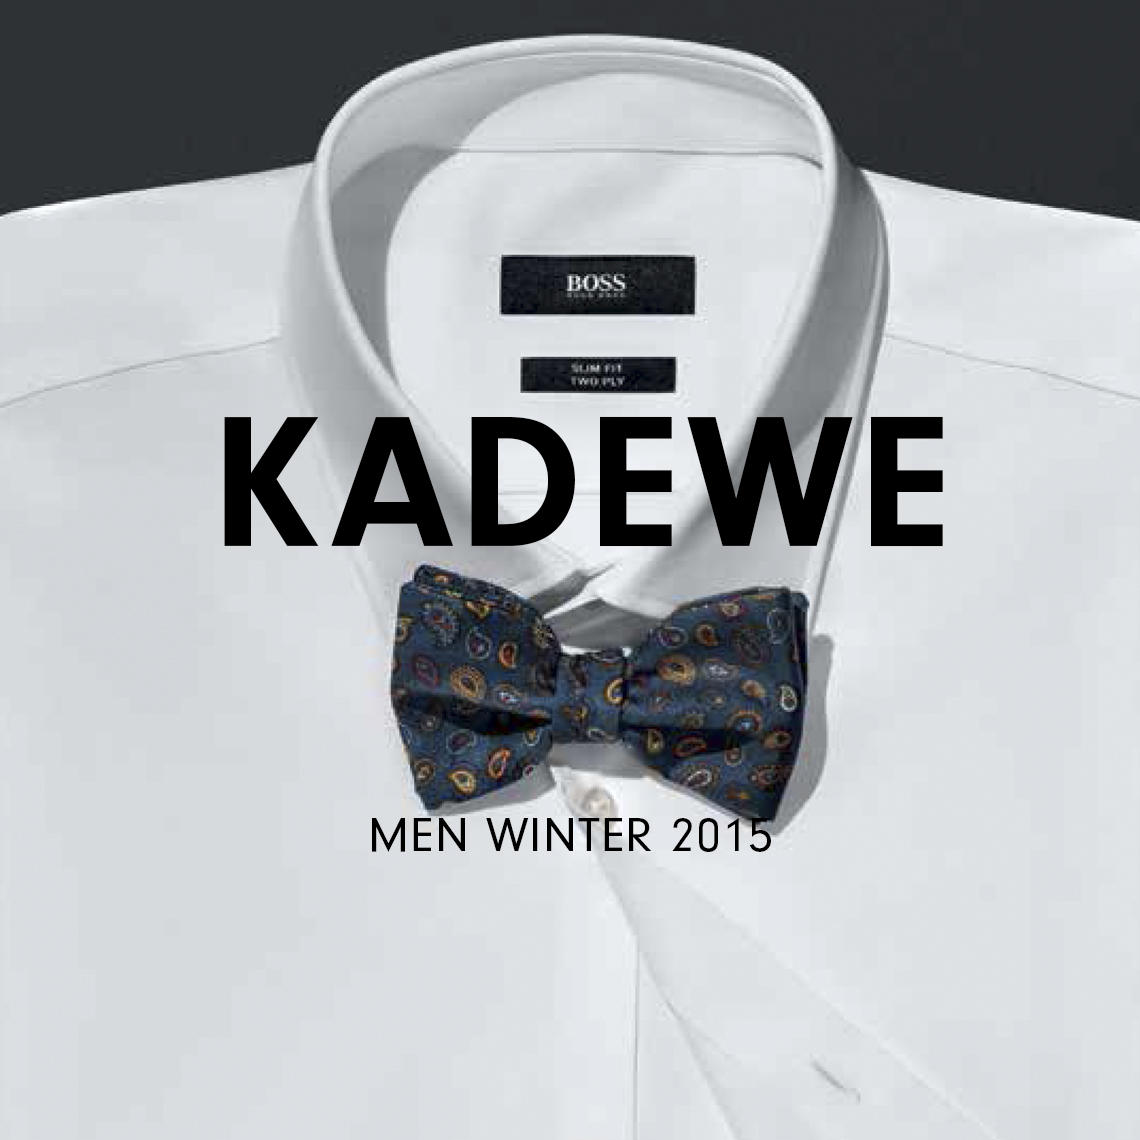 KaDeWe Men Winter 2015